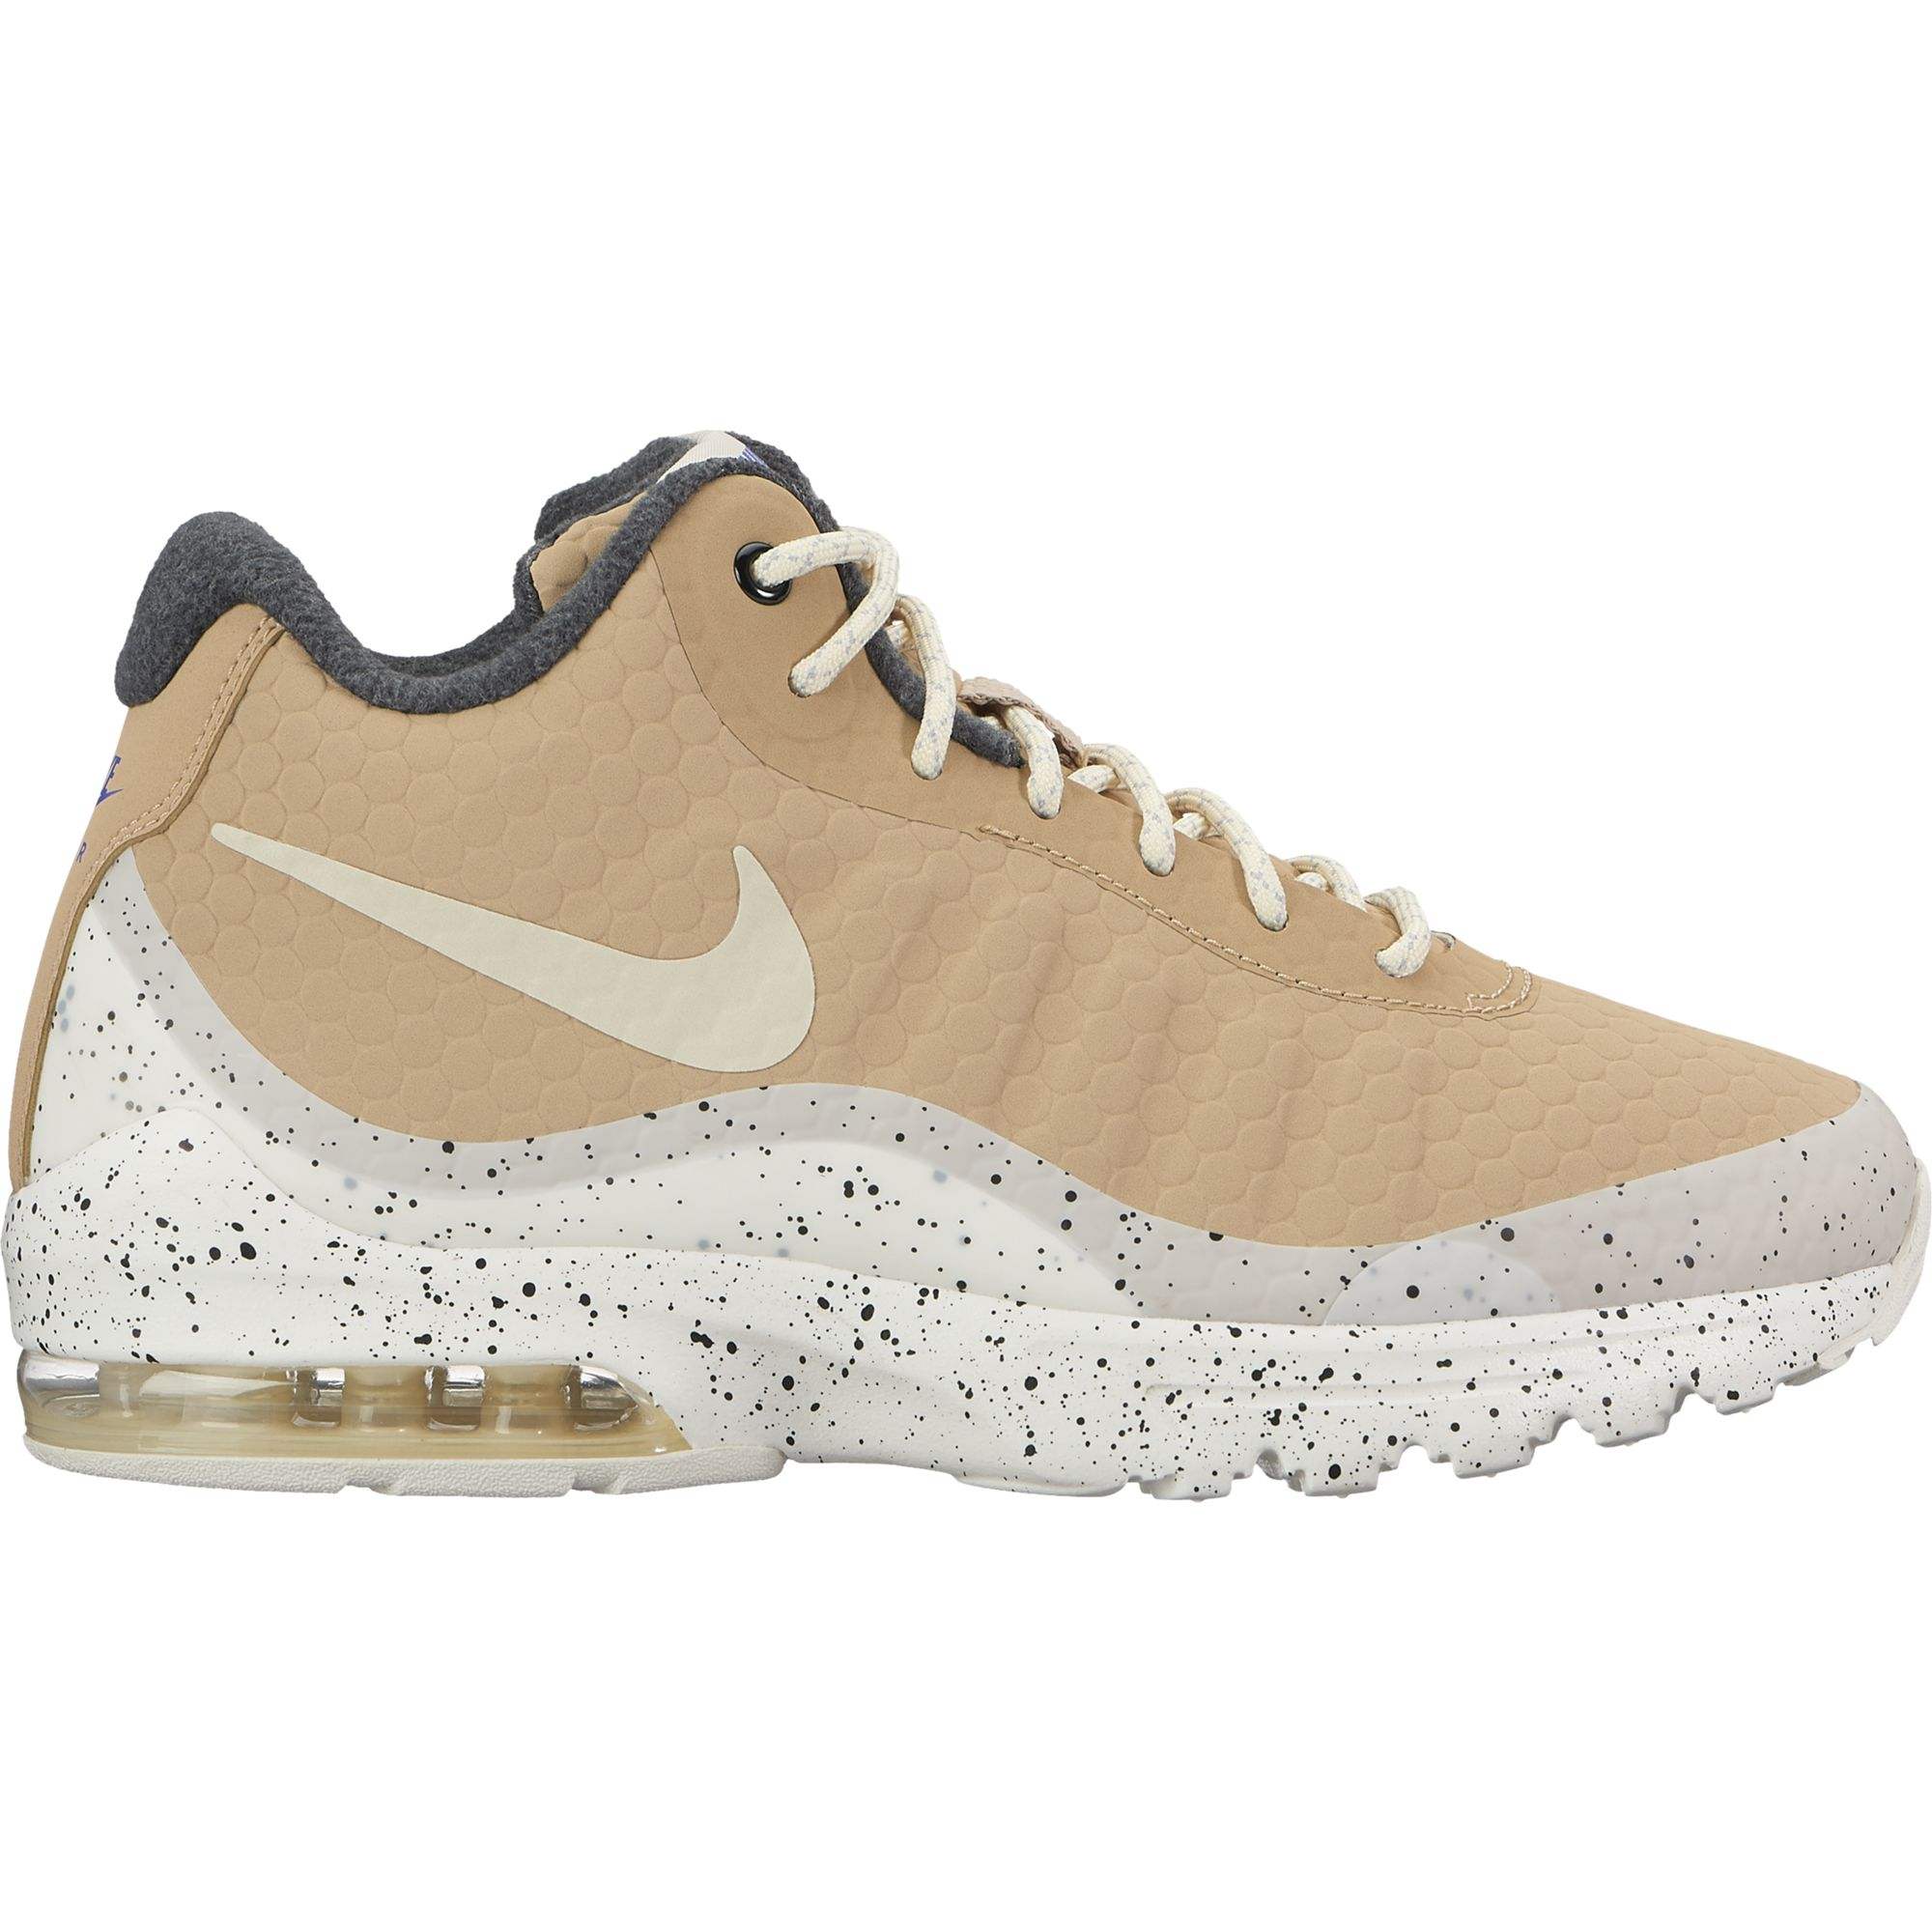 0aade4d38d Women's Nike Air Max Invigor Mid-Top Shoe - Sieverts Sporting Goods